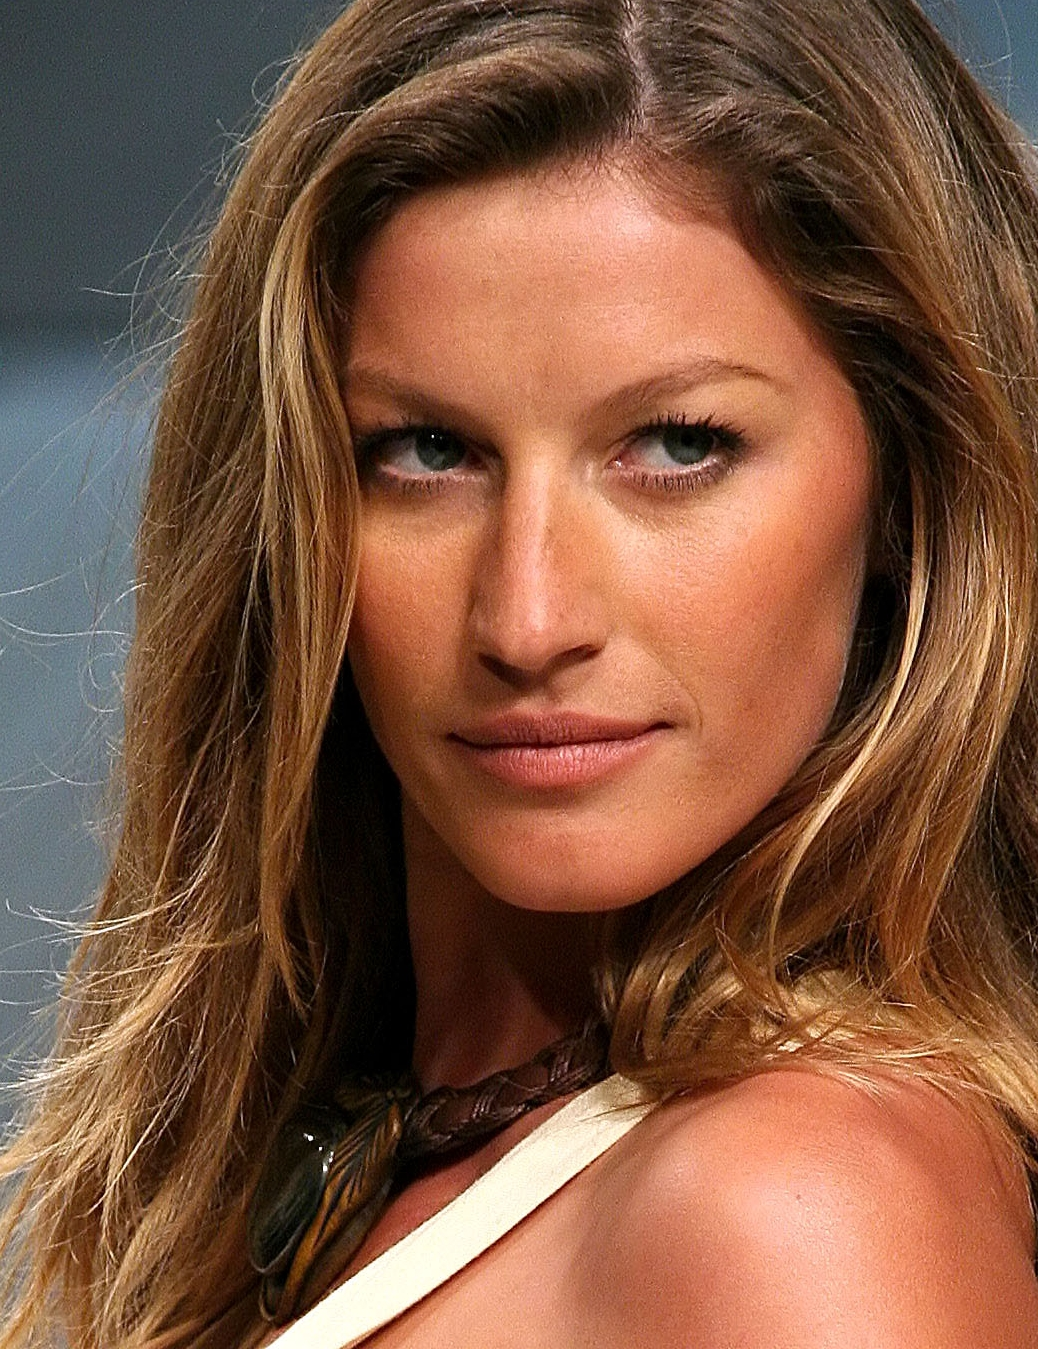 File:Gisele Bundchen2 cropped.jpg - Wikimedia Commons Gisele Bundchen